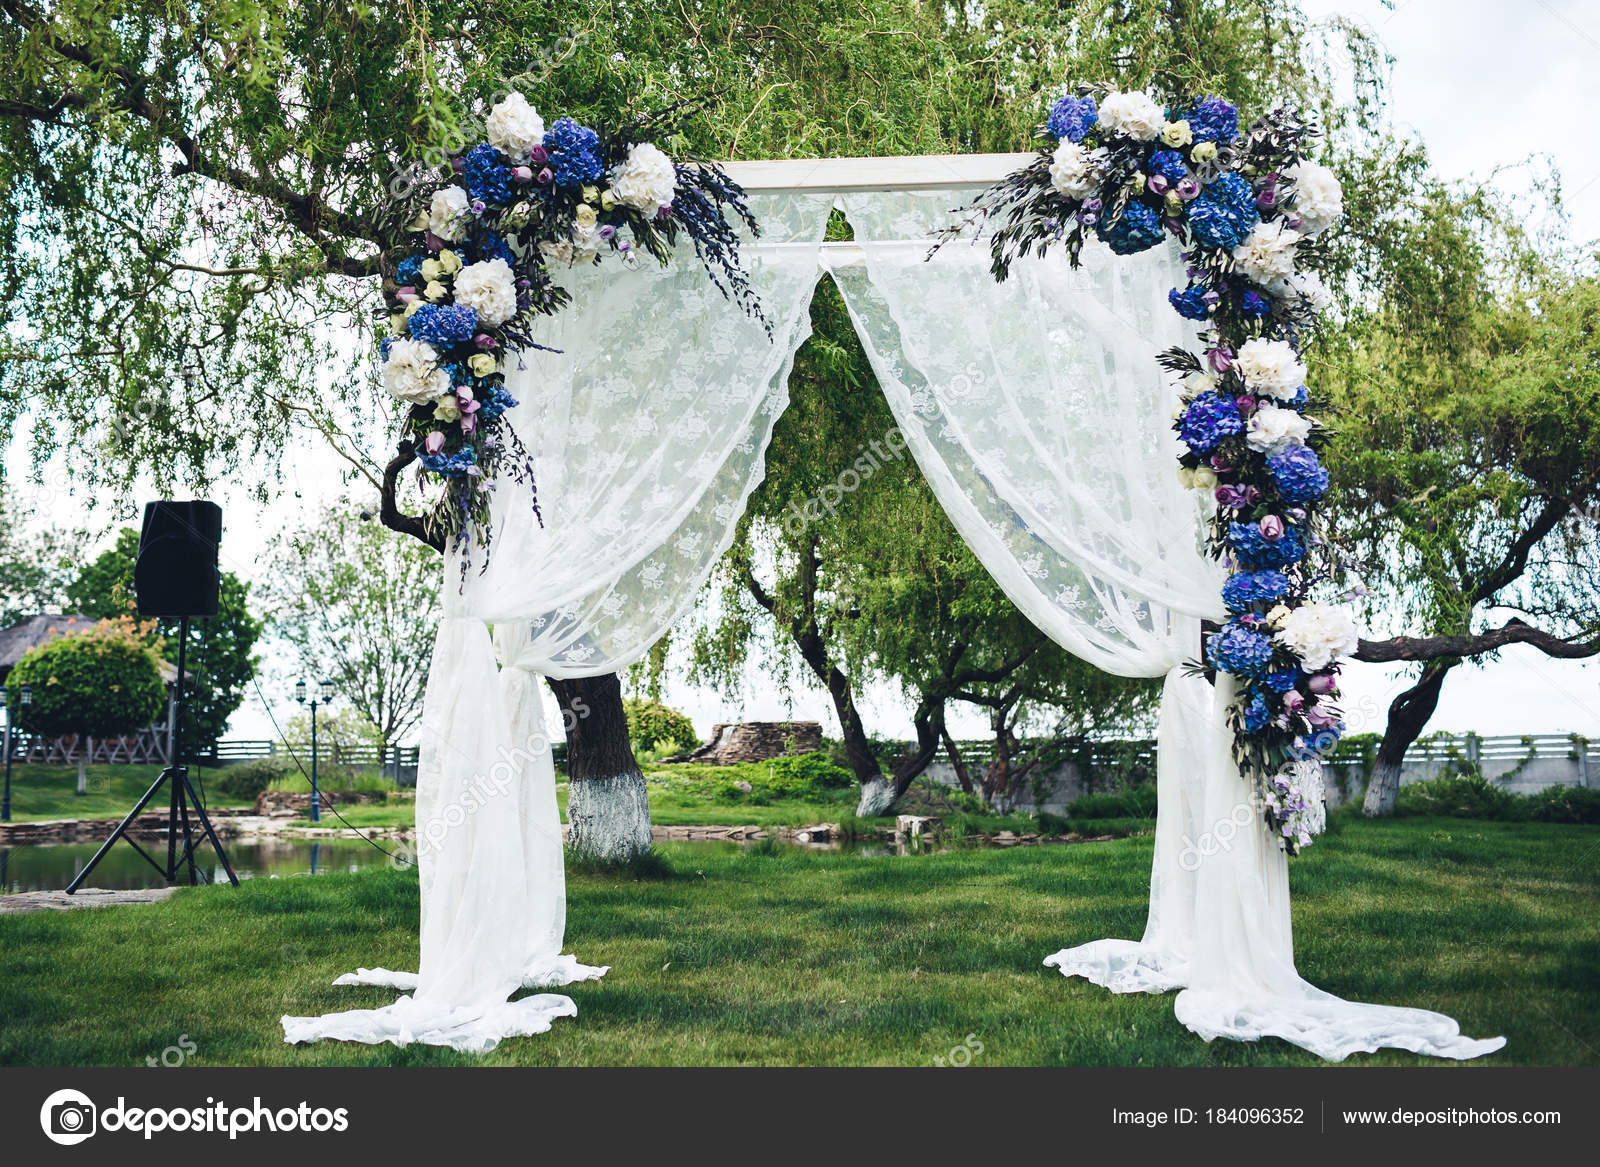 Wedding arch decorated with fabric and flowers stock photo wedding arch decorated with fabric and flowers stock photo junglespirit Image collections